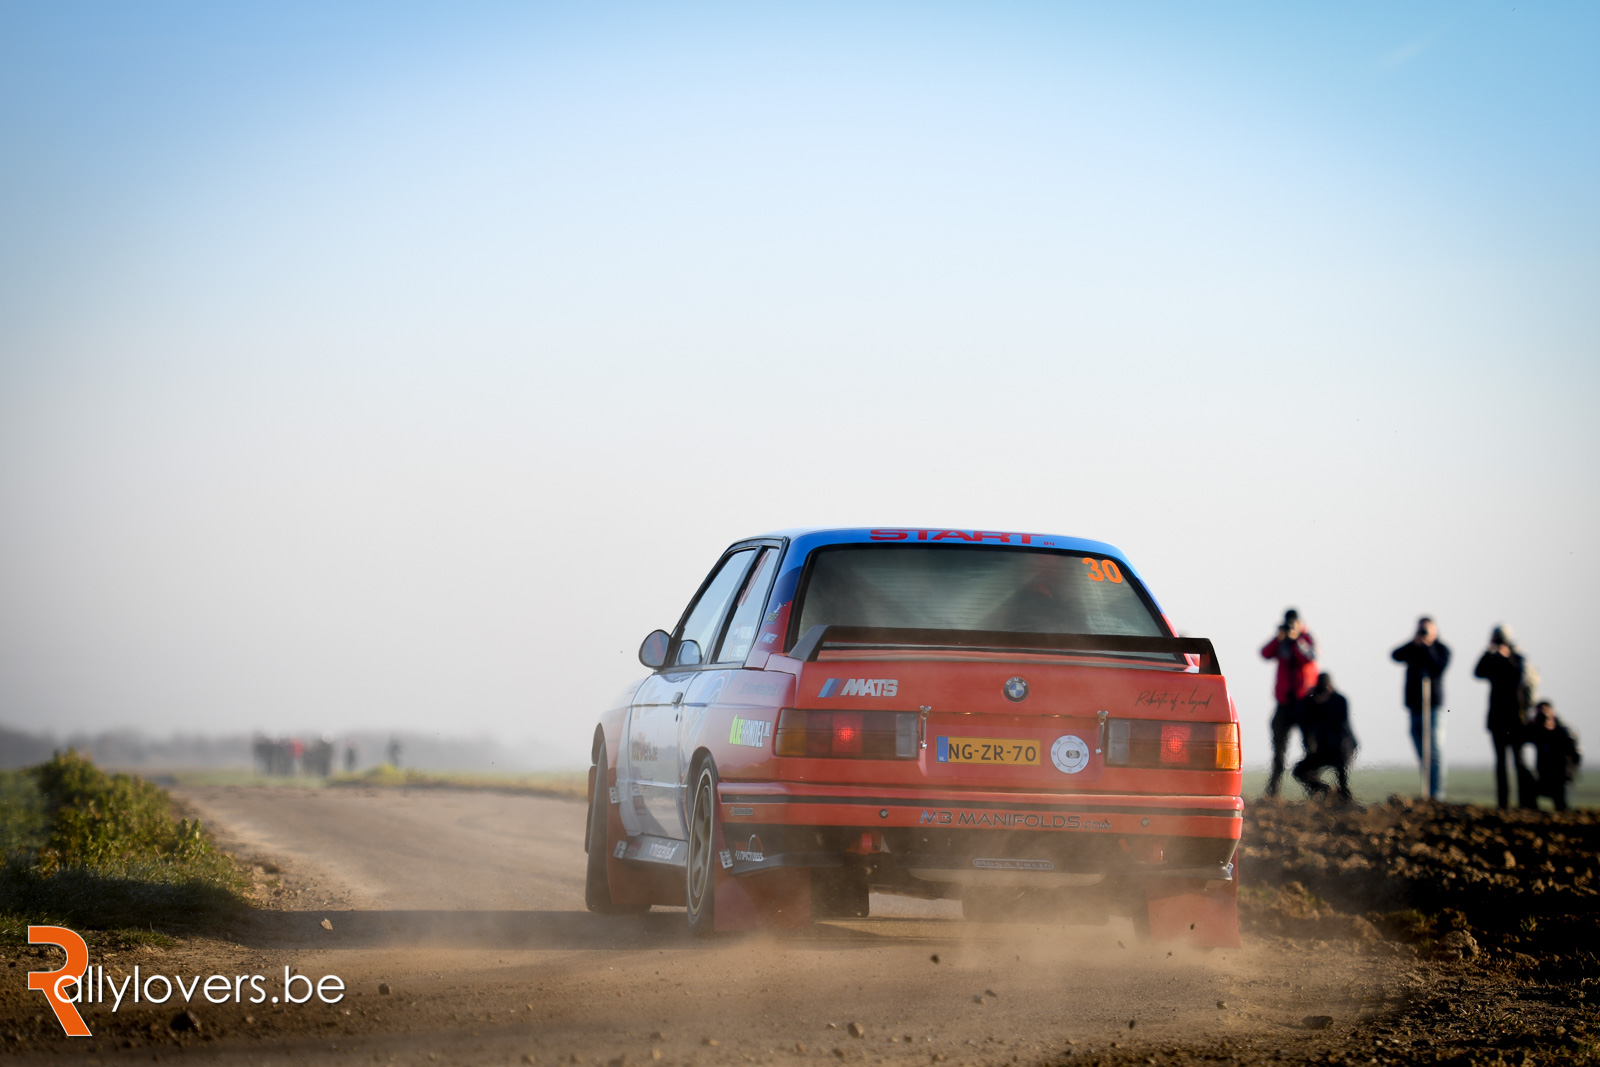 Preview - TAC Rally - Mats van den Brand